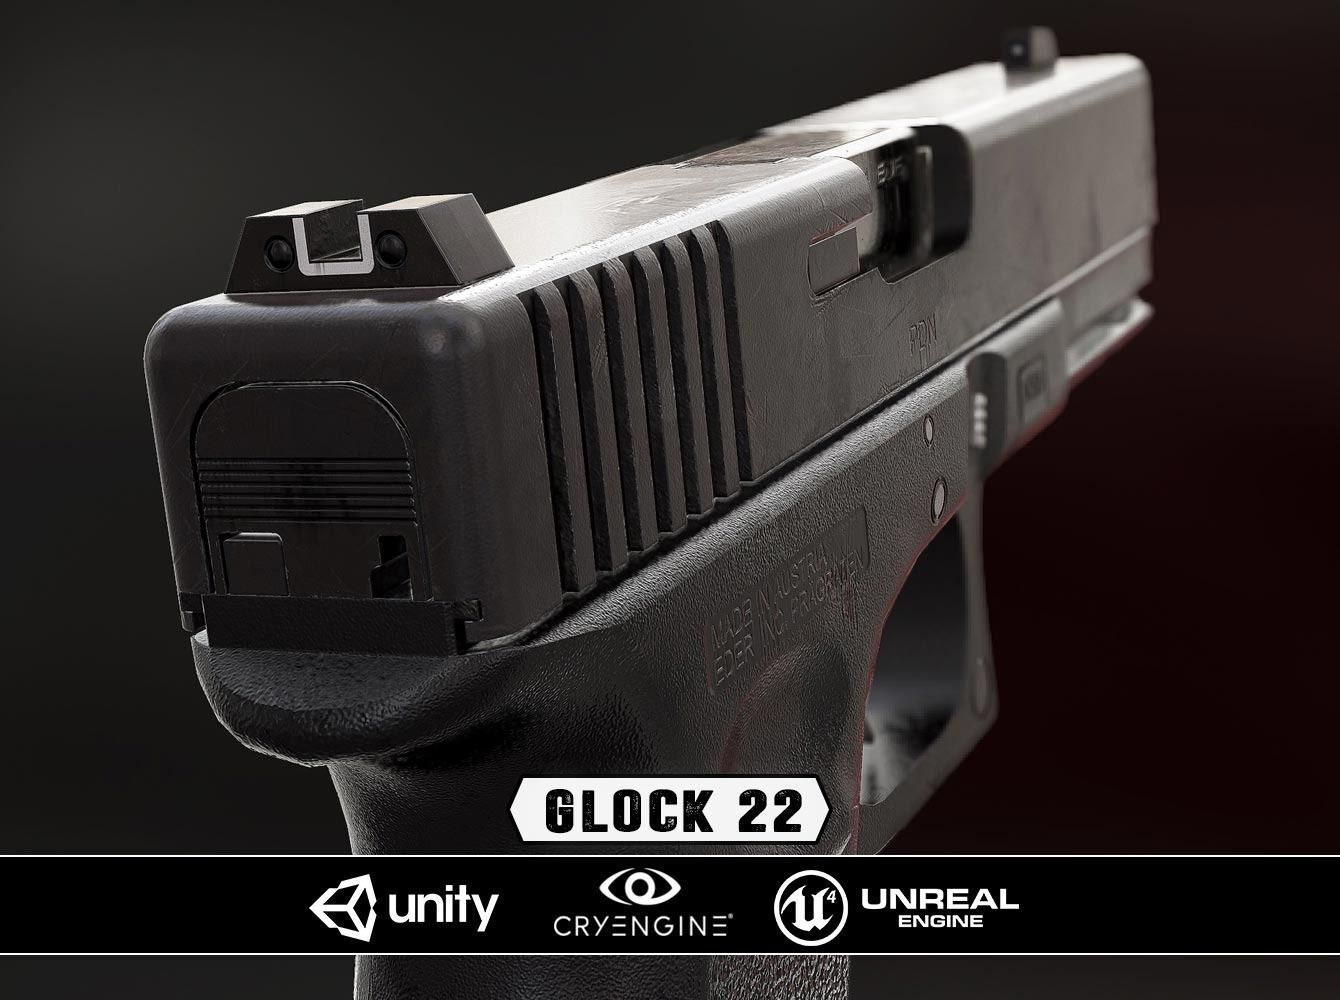 Glock 22 - Model and Textures | 3D model